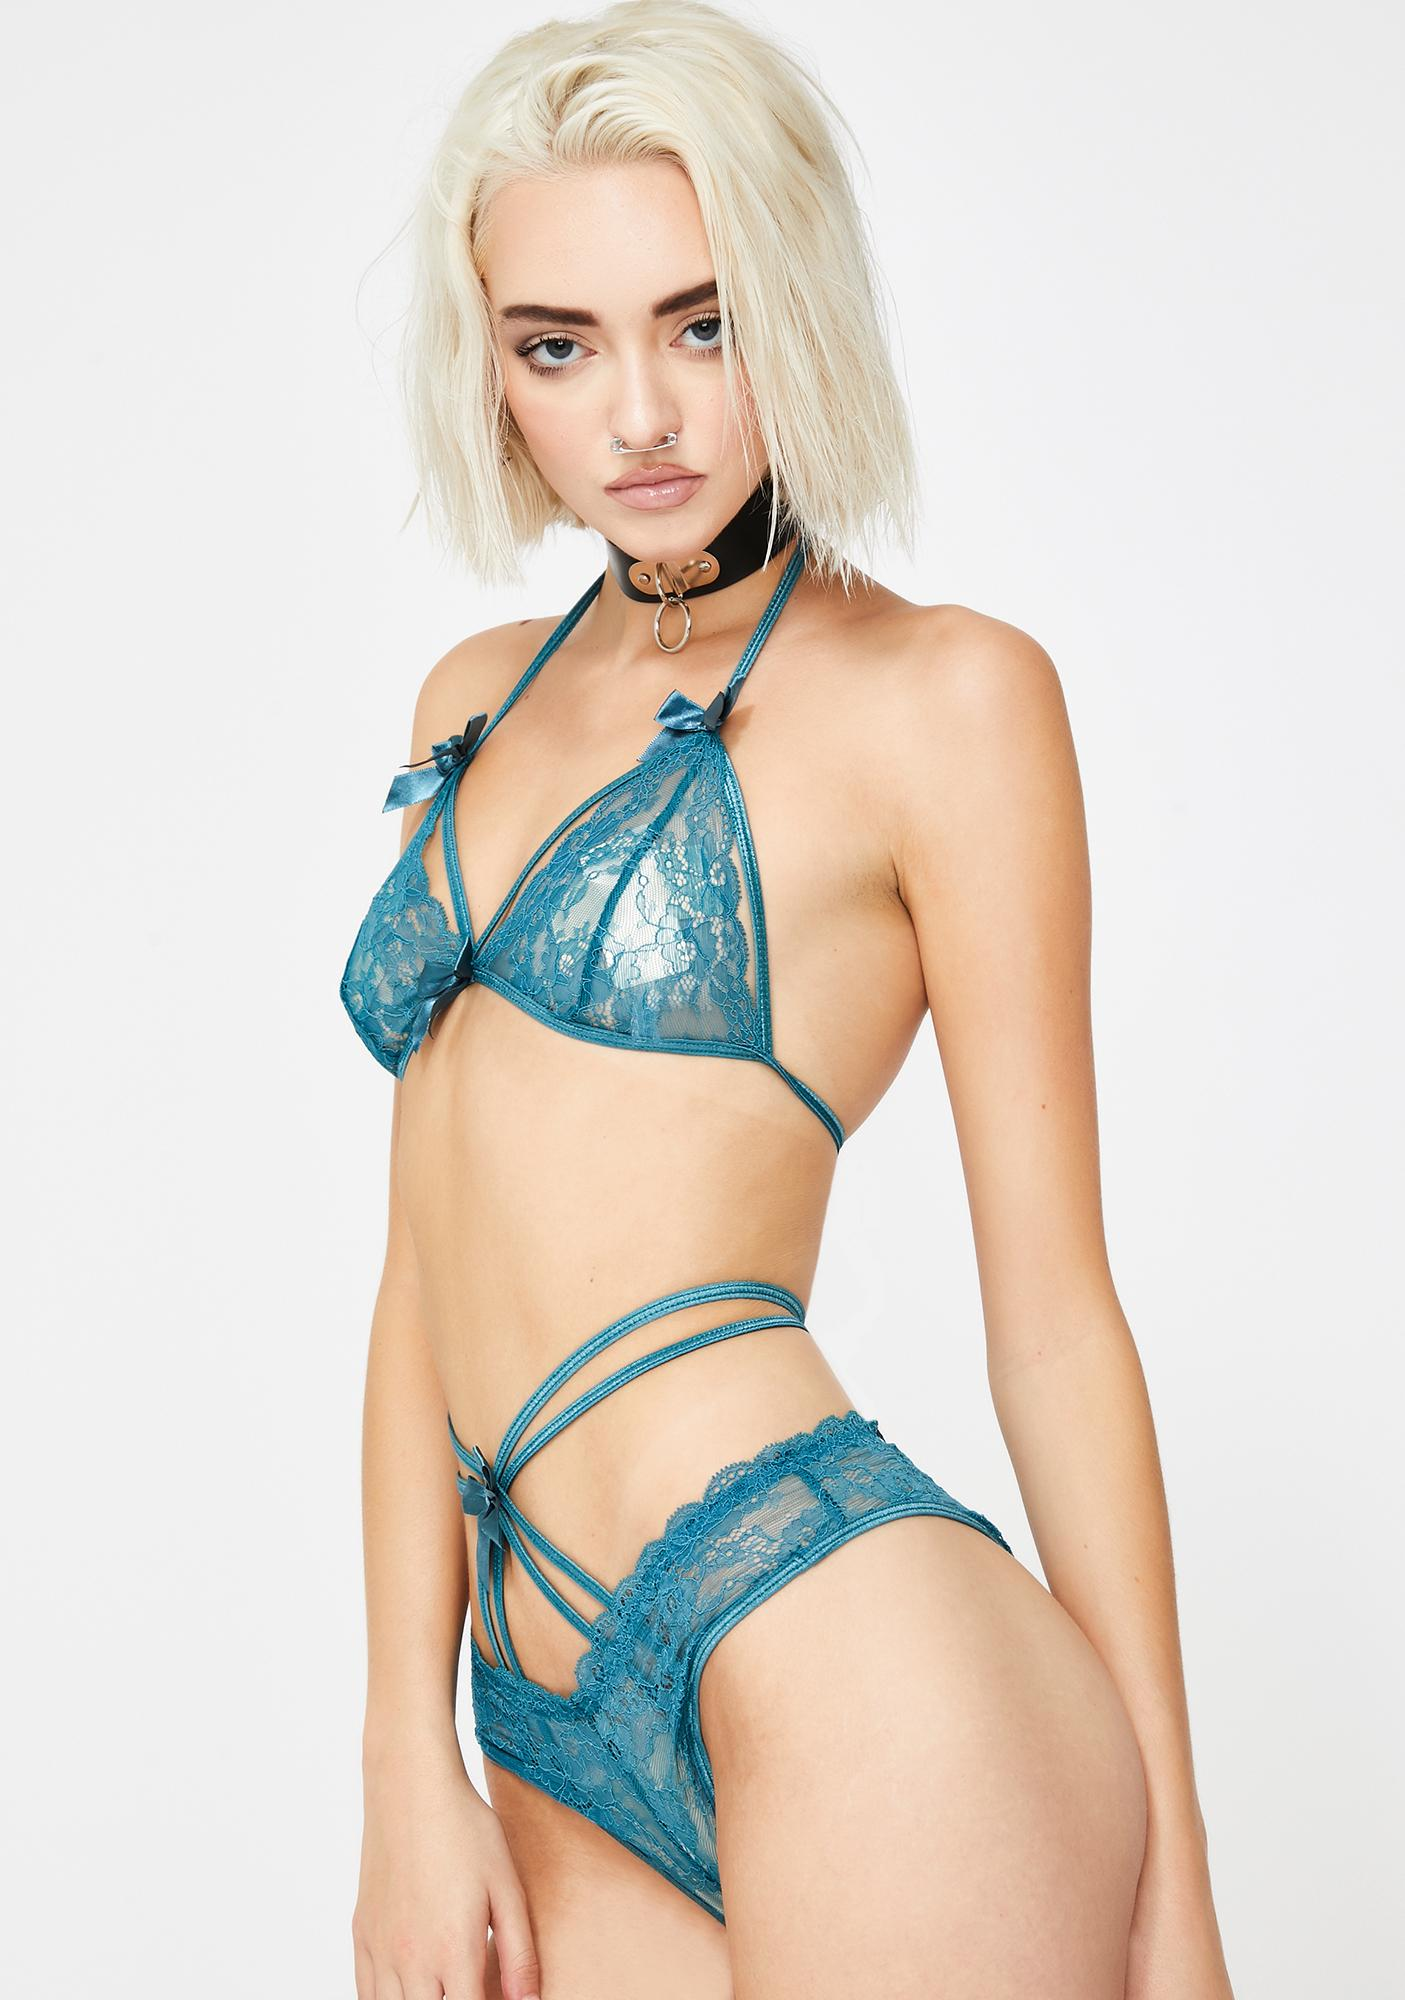 Shades Of Desire Lace Set